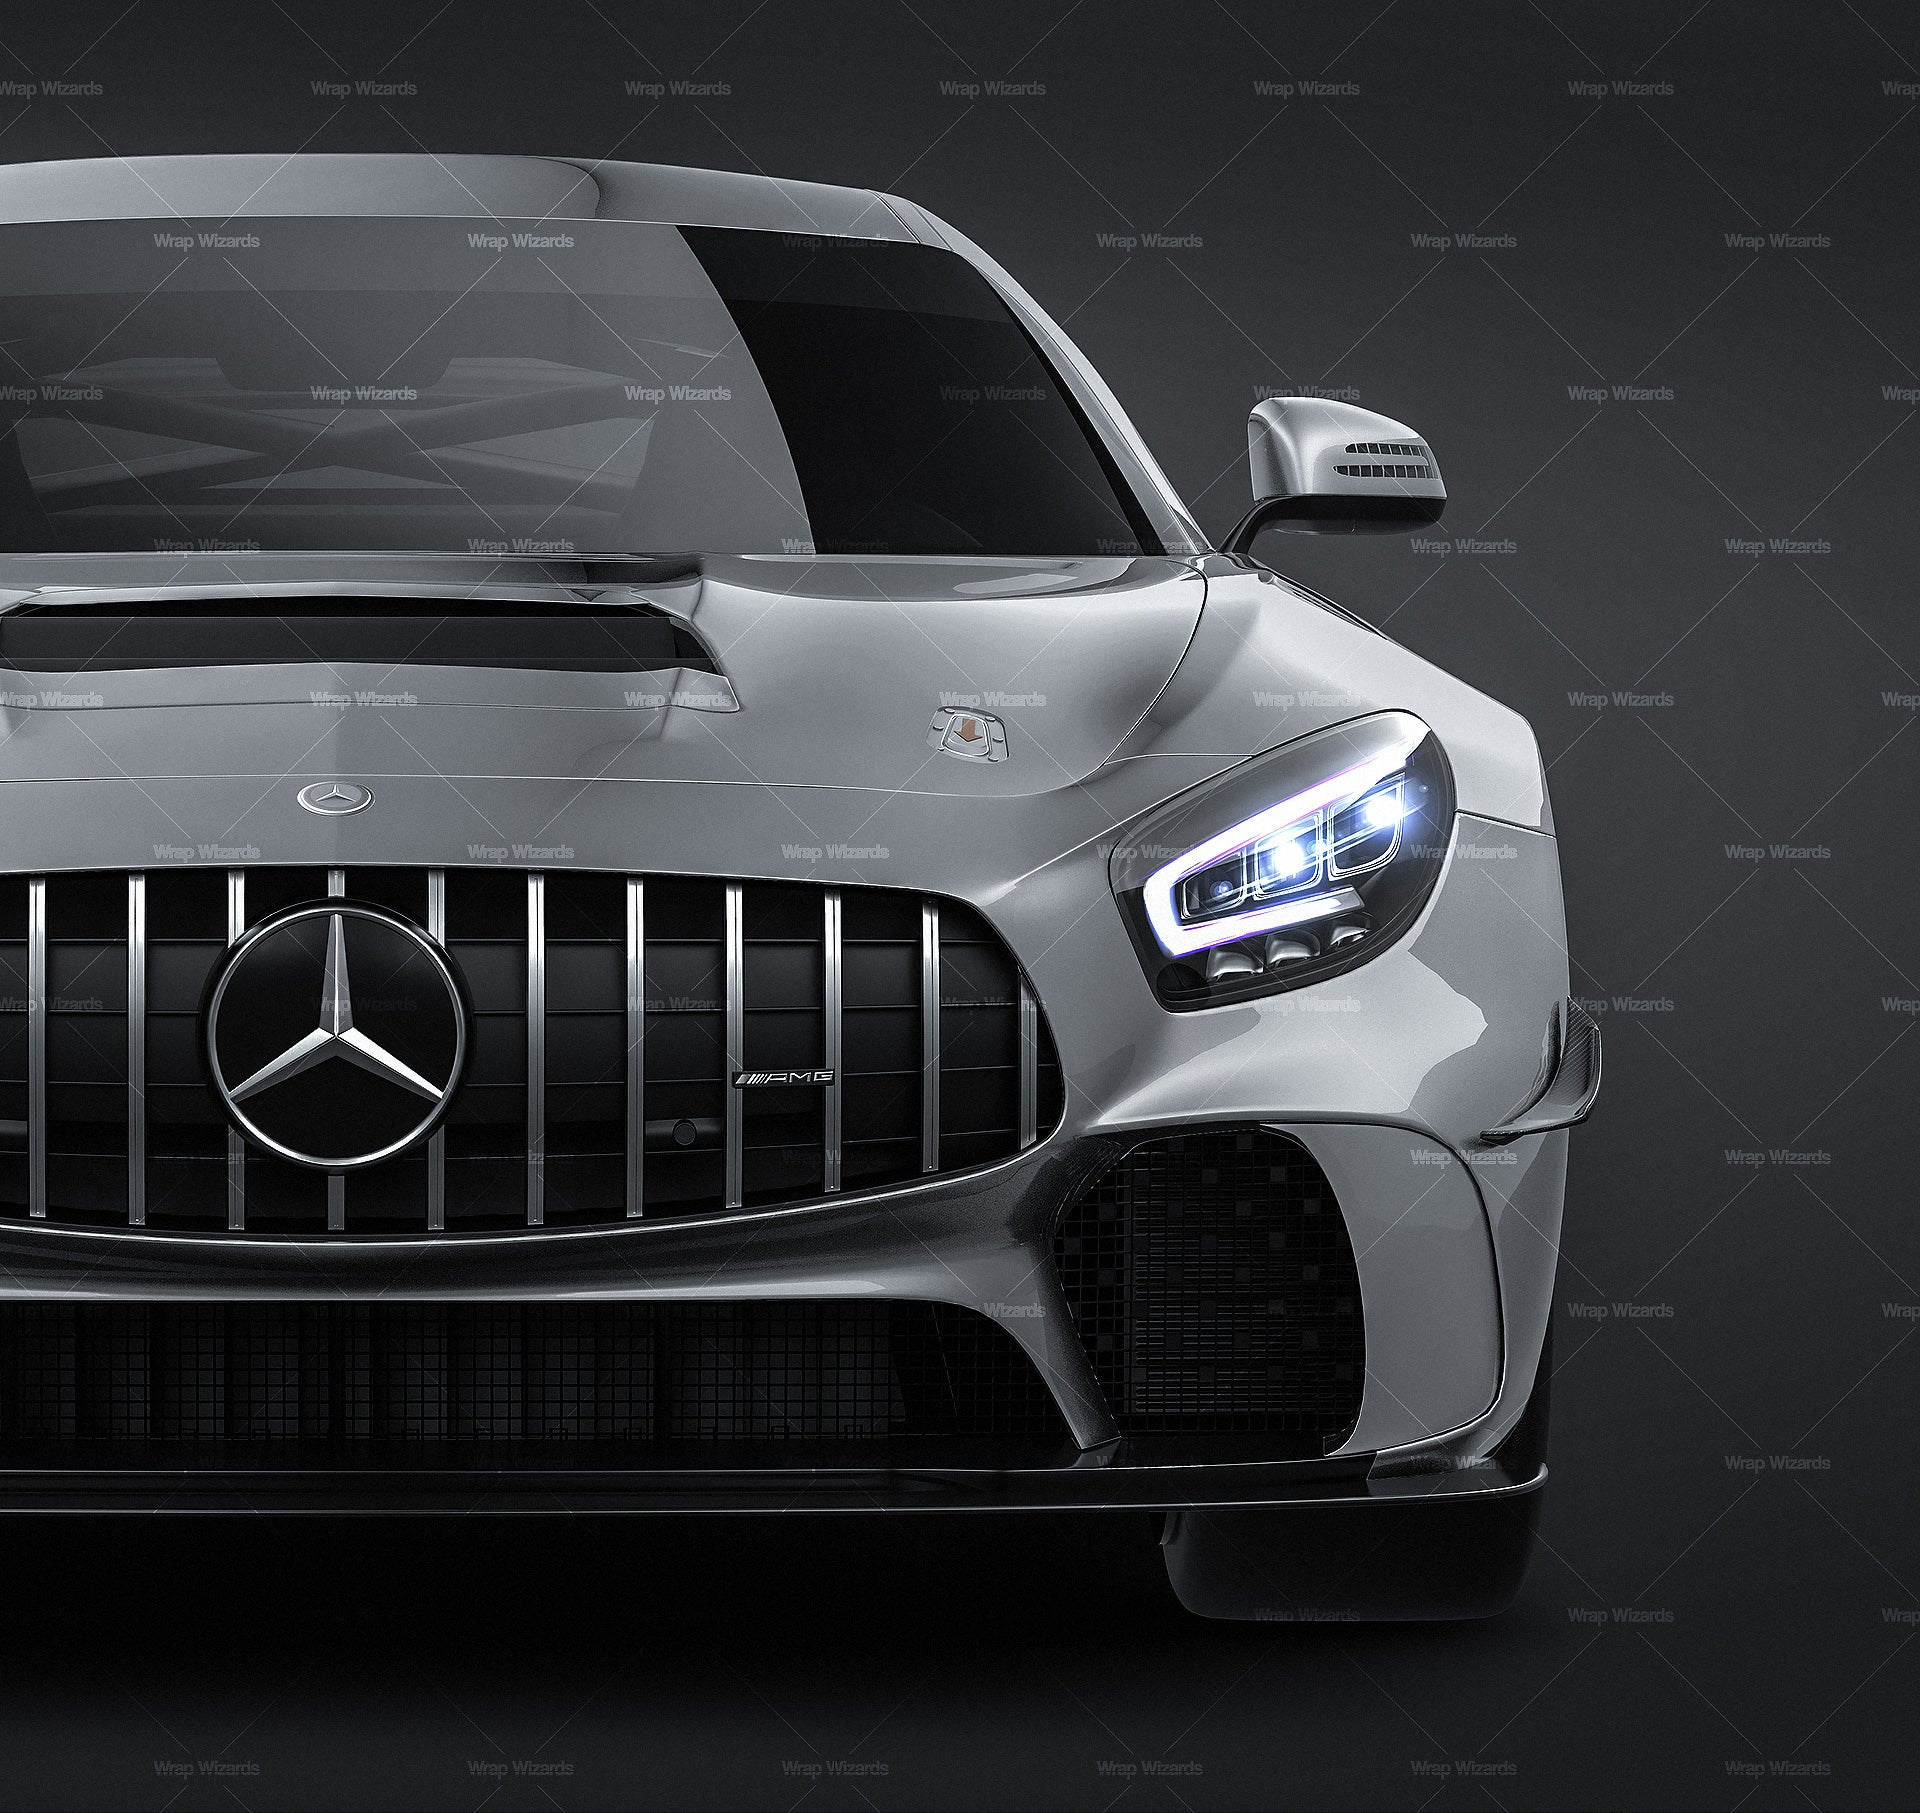 Mercedes Benz AMG GT4 2020 all sides Car Mockup Template.psd